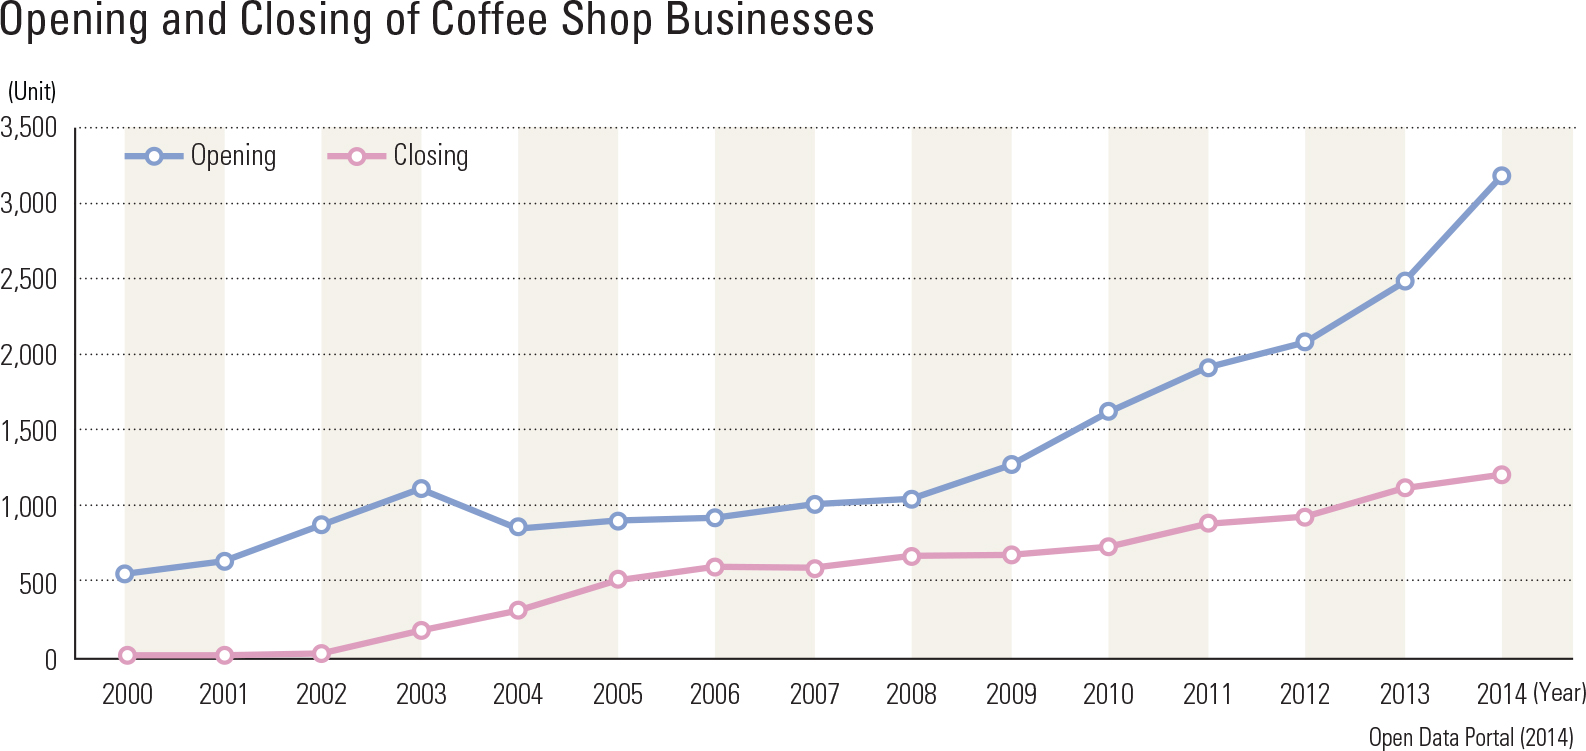 Opening and Closing of Coffee Shop Businesses